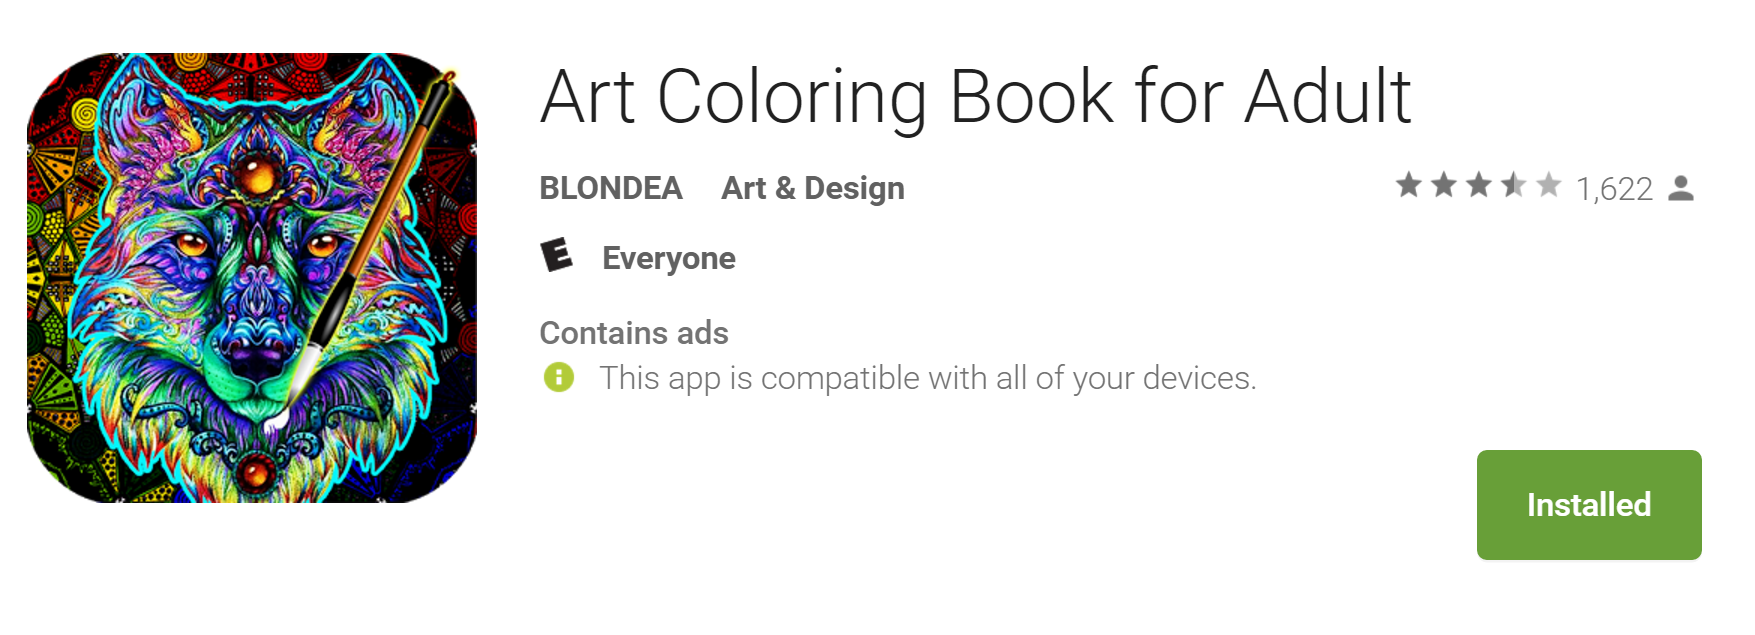 Art Coloring Book For Adults Offers Stress Relief But Bring Your Stylus Review